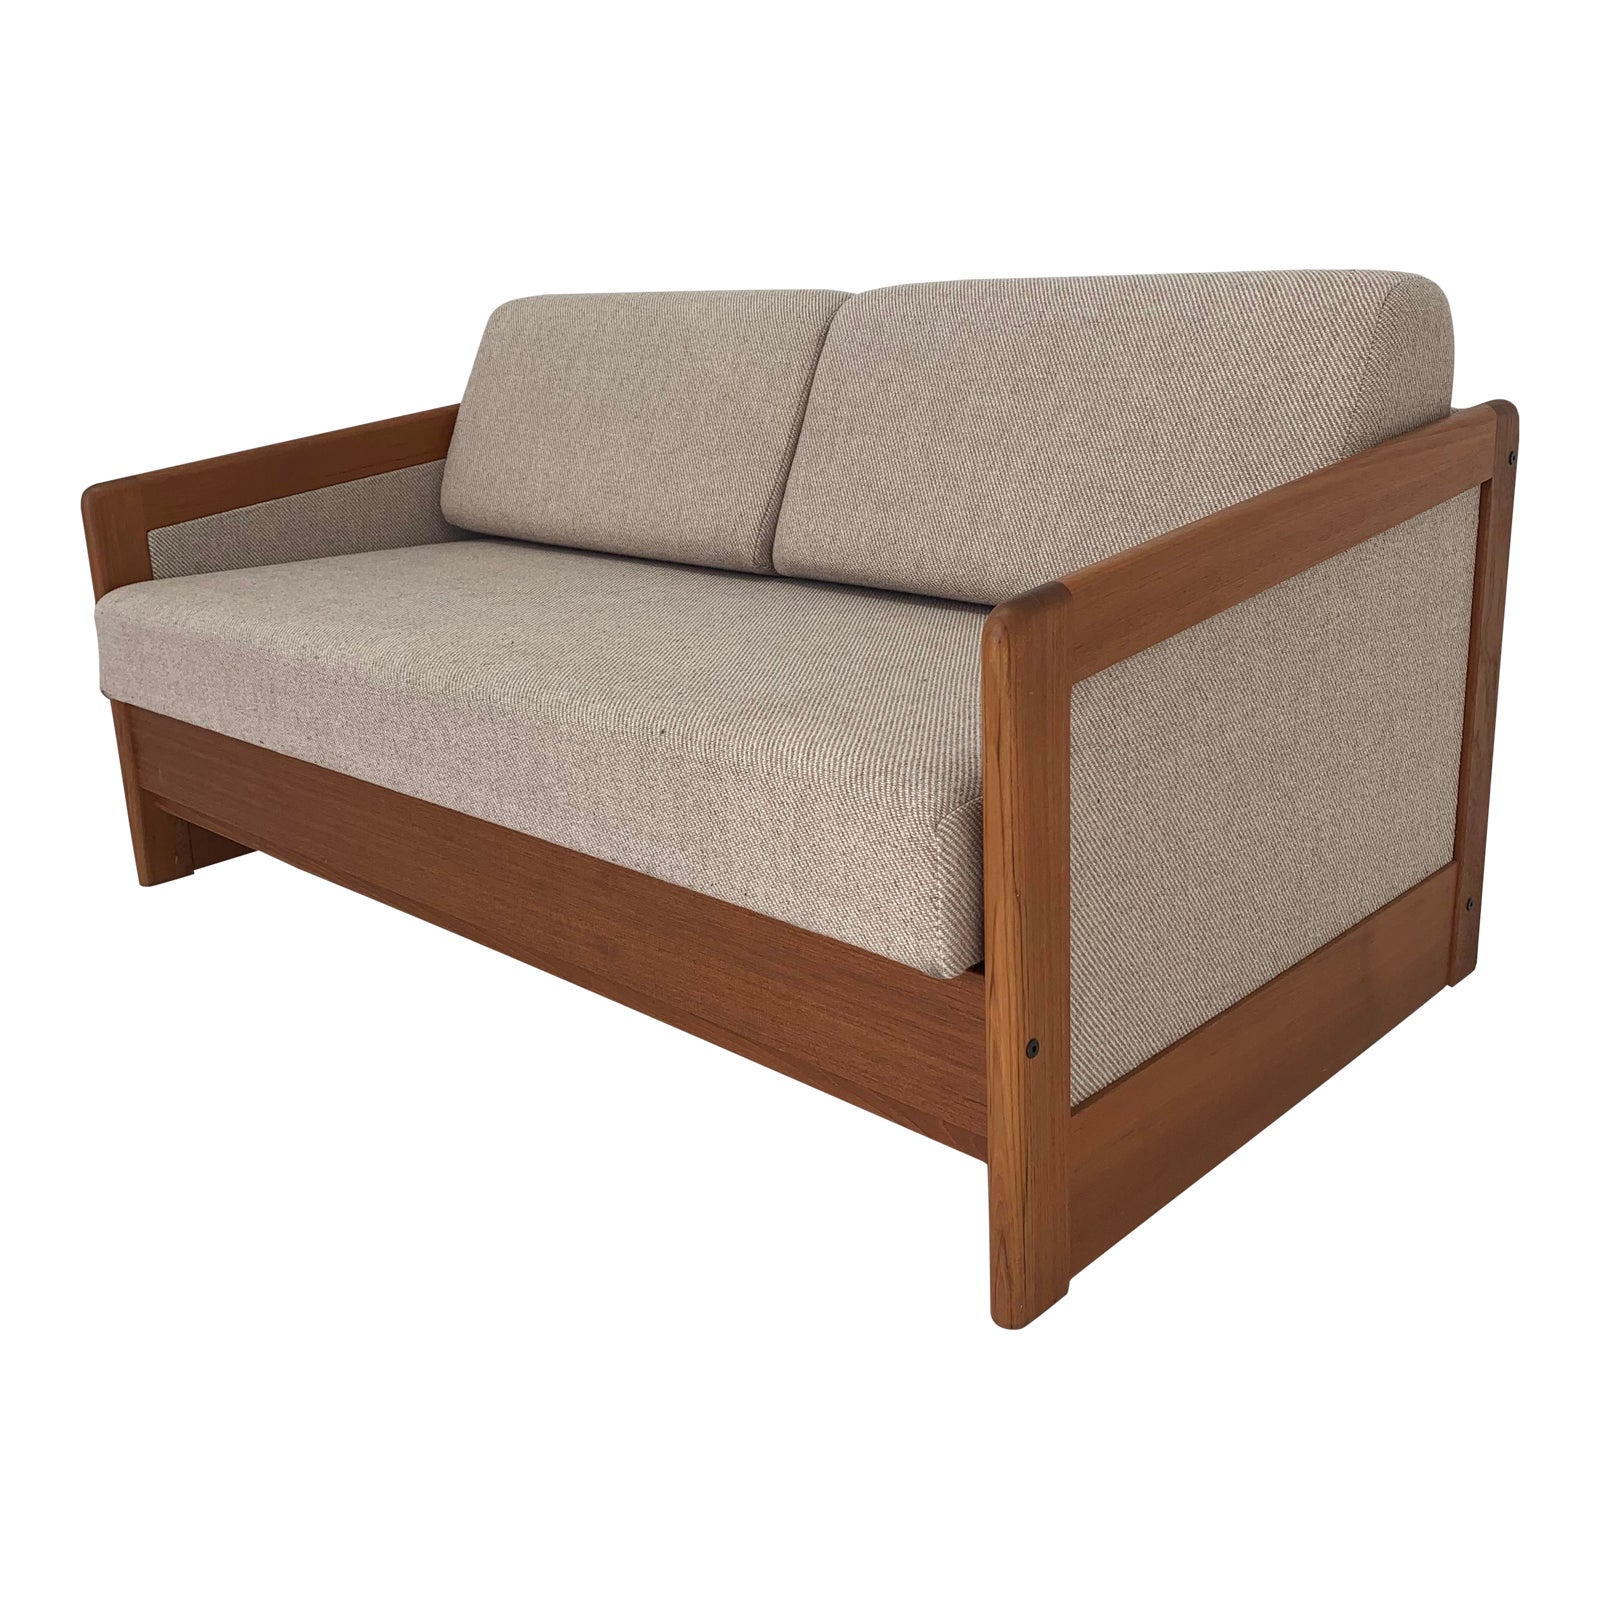 Vintage Scandinavian Style Sofa With Pull Out